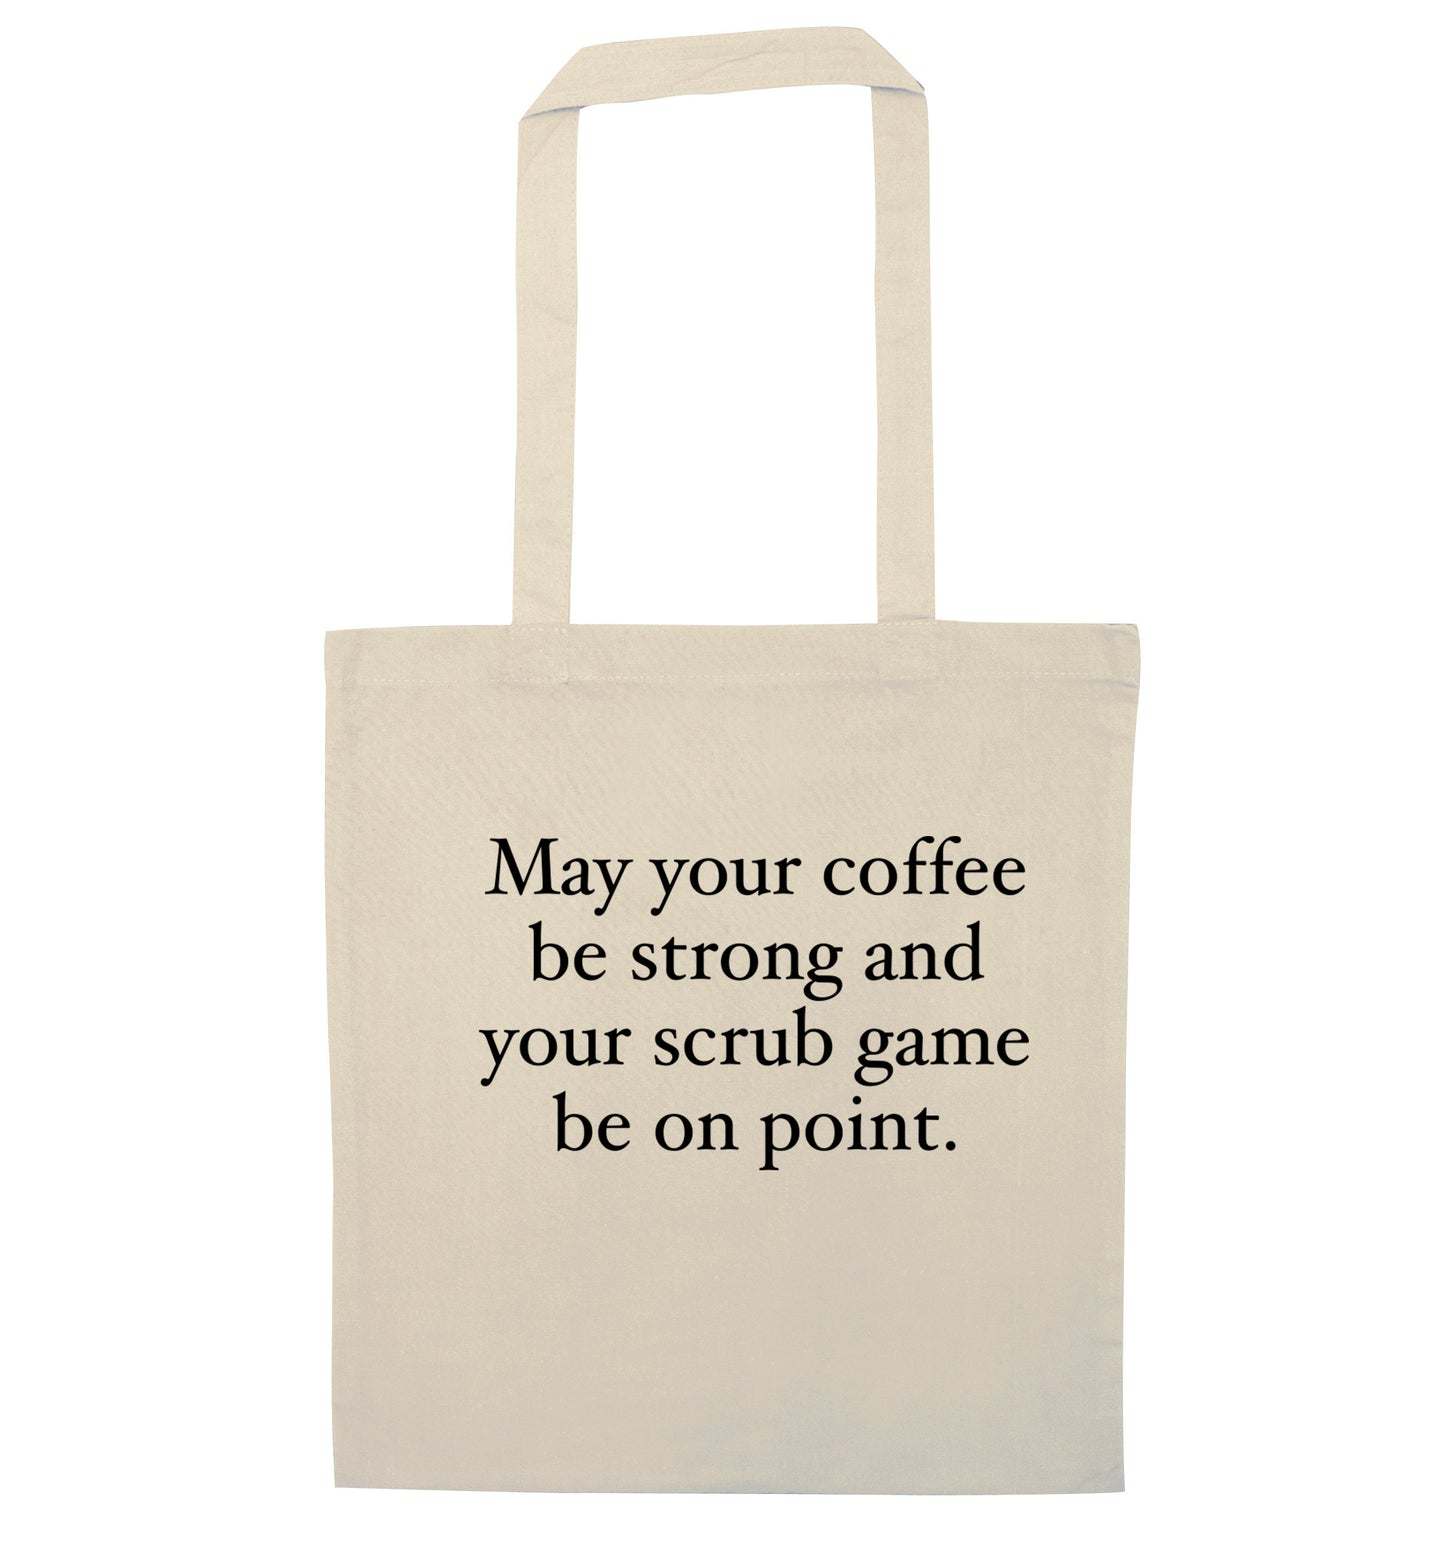 May your caffeine be strong and your scrub game be on point natural tote bag